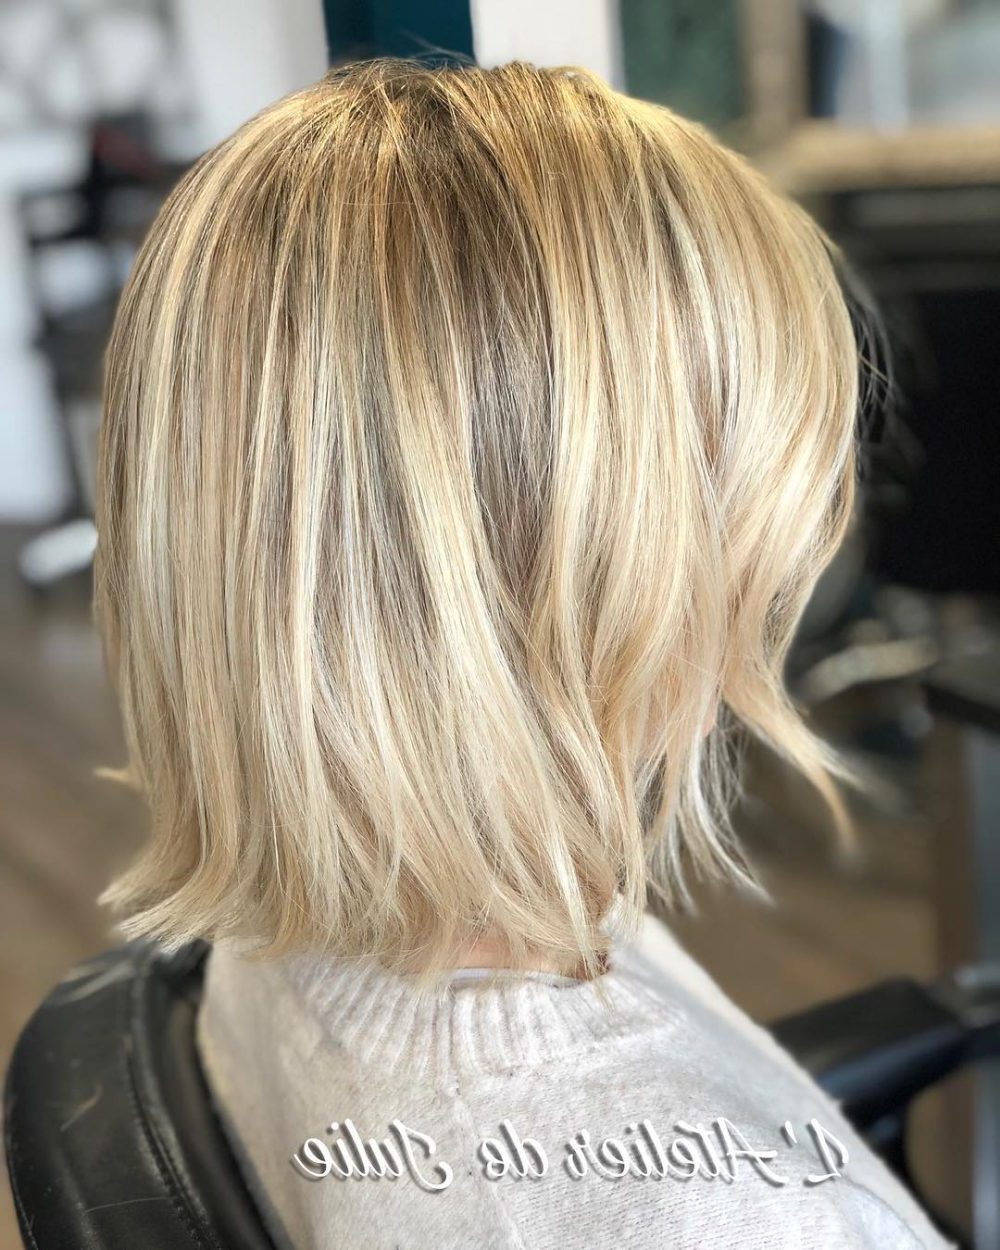 34 Perfect Short Haircuts And Hairstyles For Thin Hair (2019) With Layered Haircuts With Delicate Feathers (View 10 of 20)